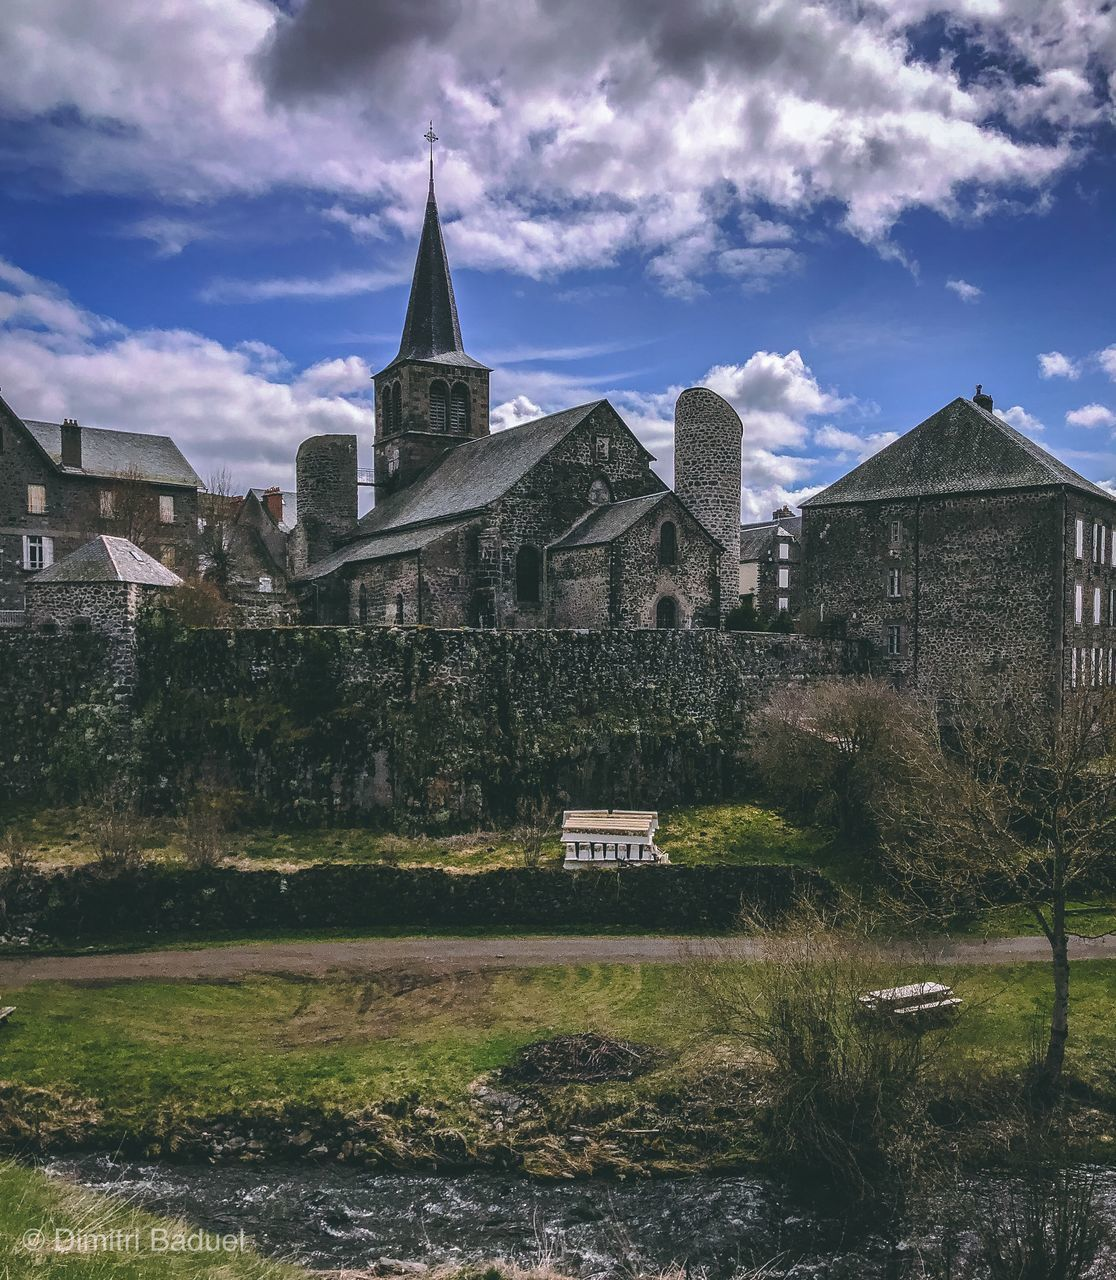 built structure, building exterior, architecture, building, religion, place of worship, sky, cloud - sky, spirituality, the past, history, belief, nature, travel destinations, grass, plant, day, no people, outdoors, abbey, spire